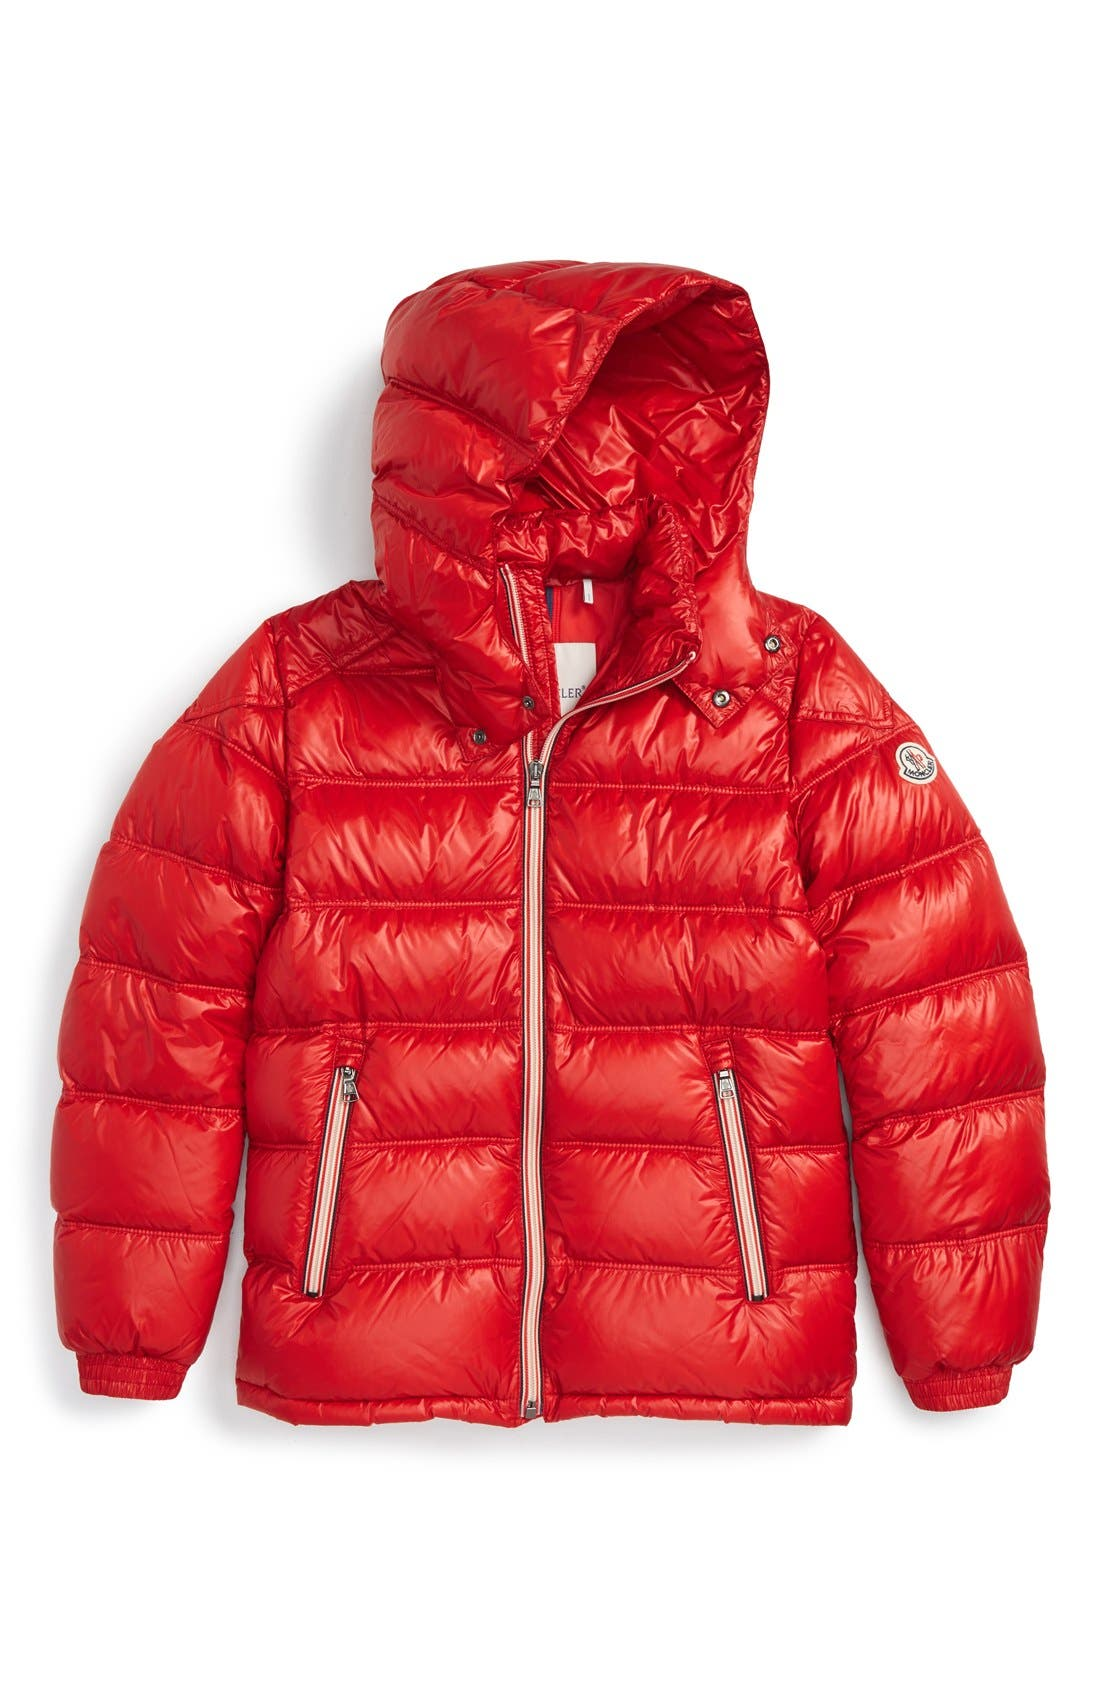 'Gaston' Hooded Down Jacket,                         Main,                         color, Red